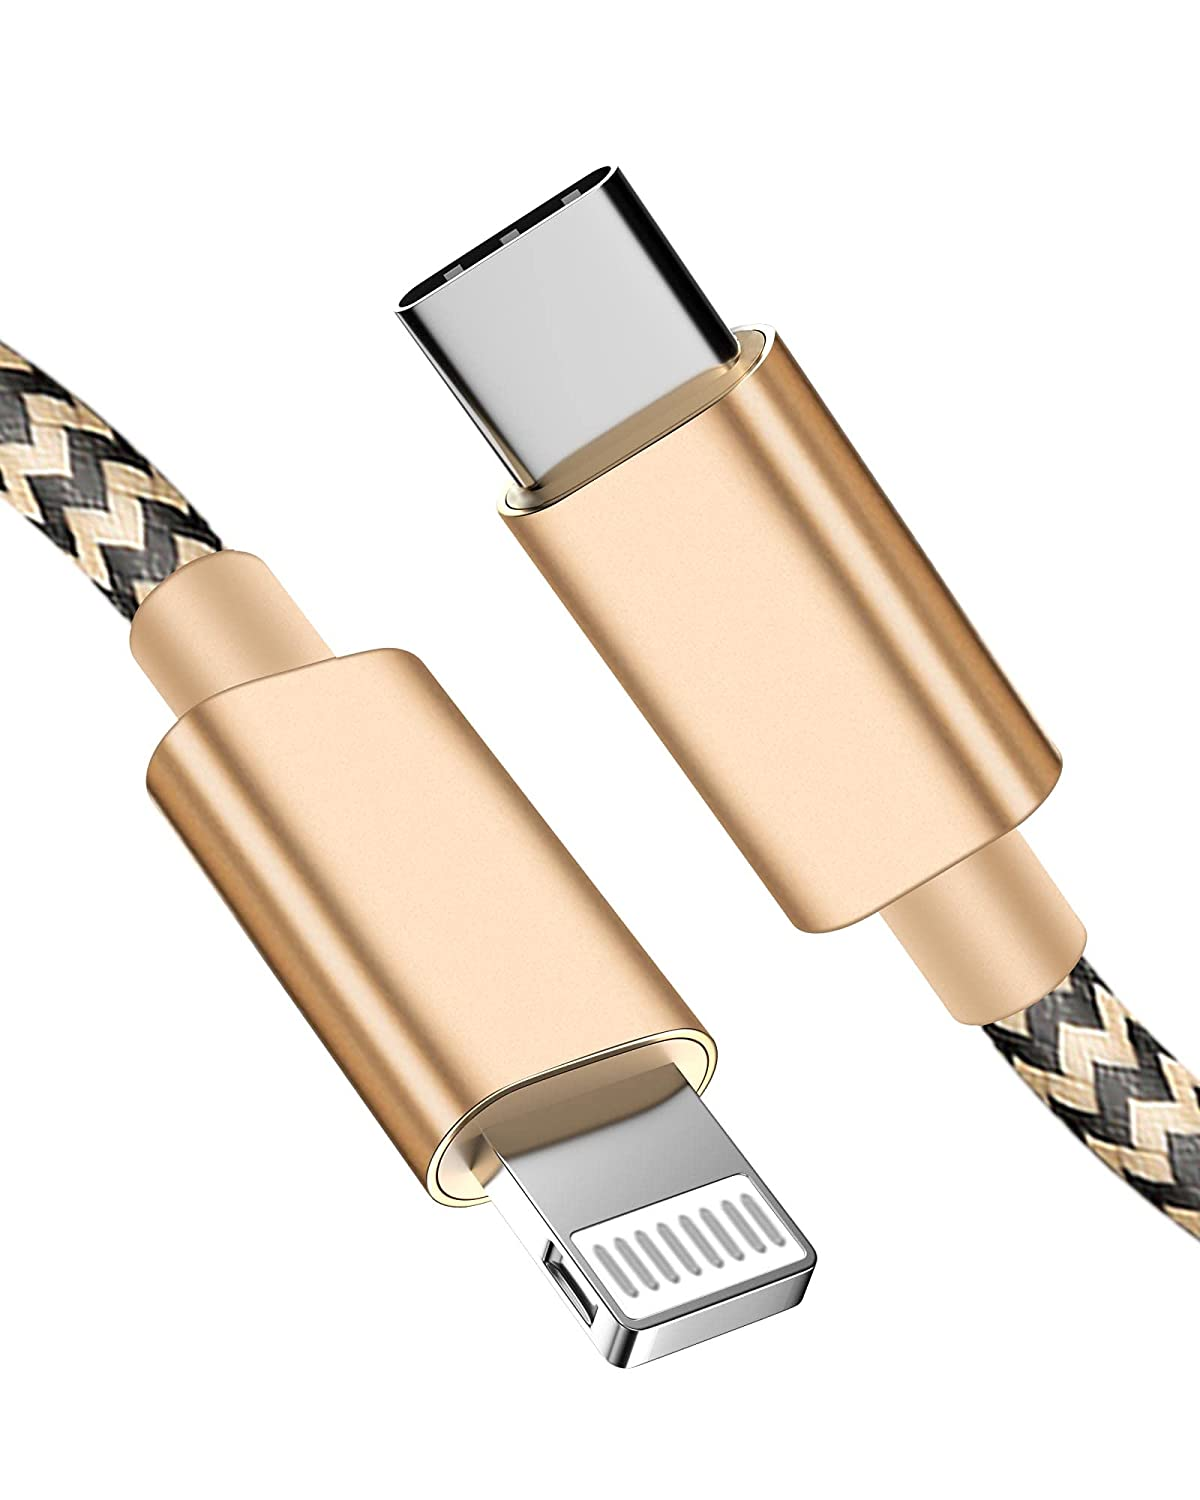 USB C to Lightning Cable 2 Pack 5FT,USB C iPhone Charger Cable Nylon Braided USB Type C to Lightning Cable Fast Charging Syncing Cable for iPhone 11 Pro/11/XR/XS/AirPods Pro/iPad Air/iPad Pro